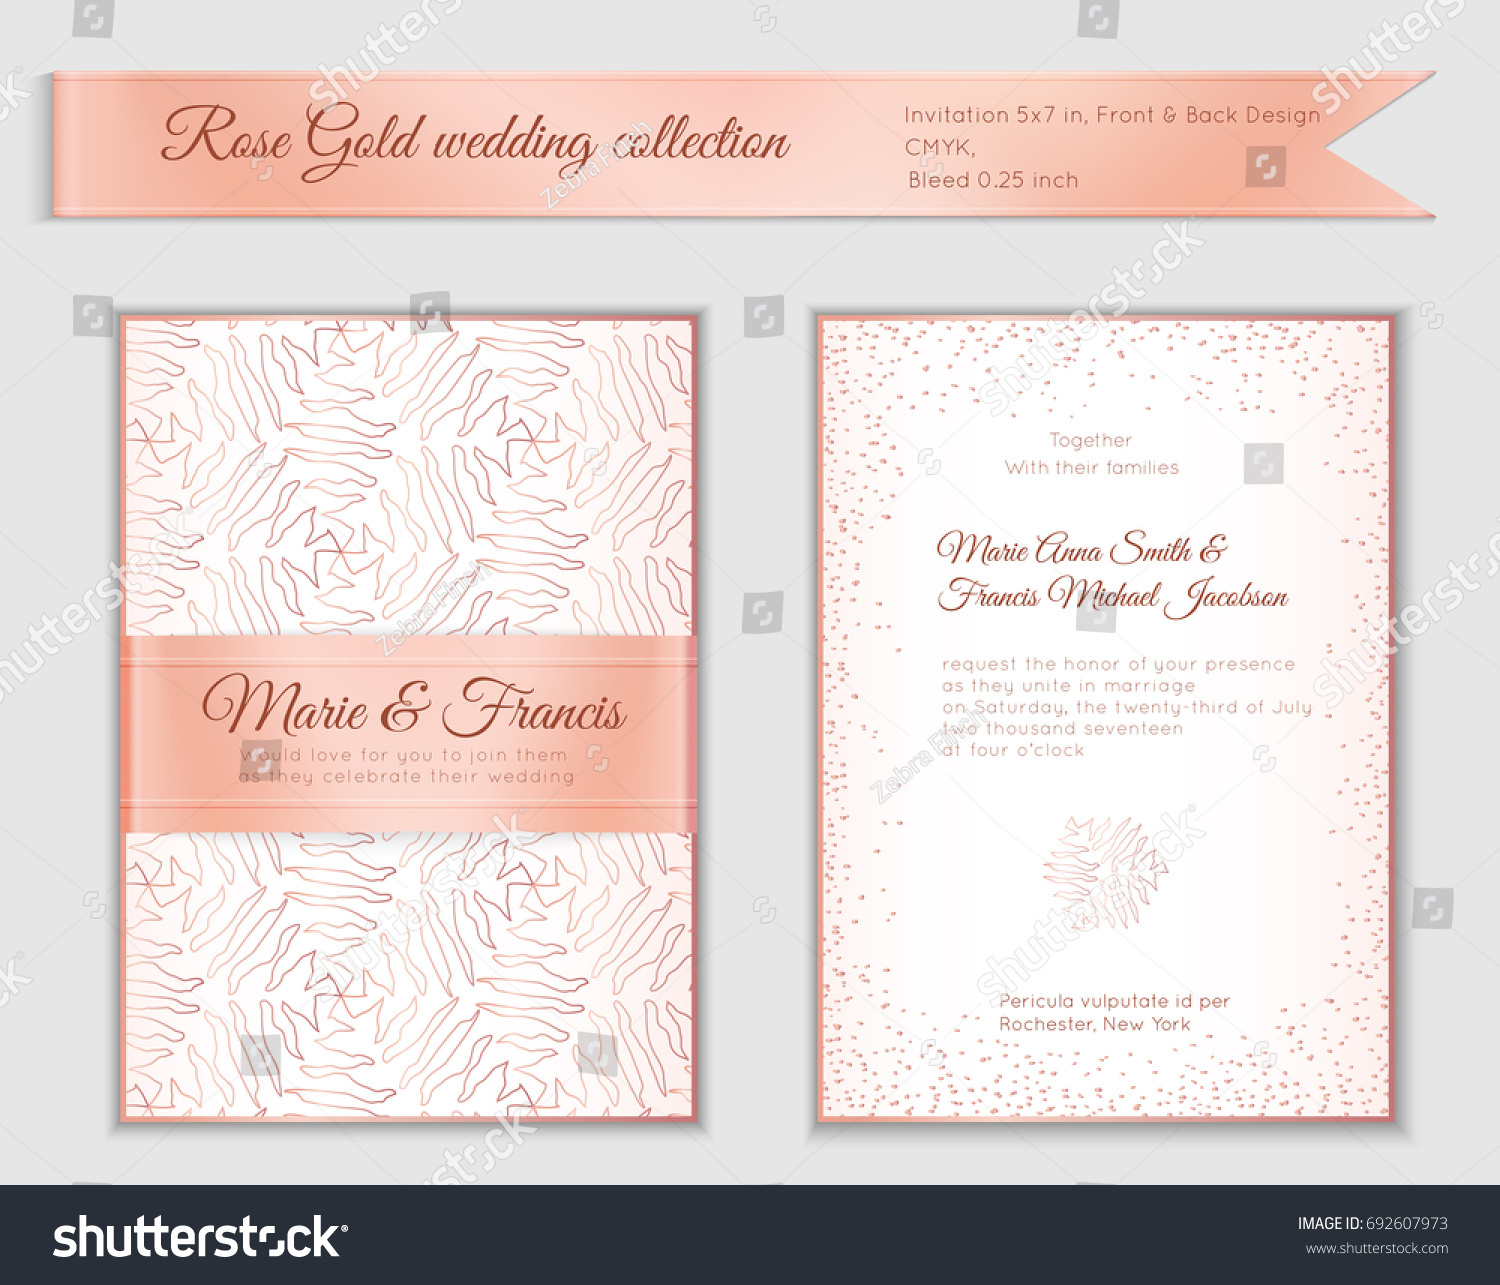 luxury wedding invitation template rose gold stock vector royalty